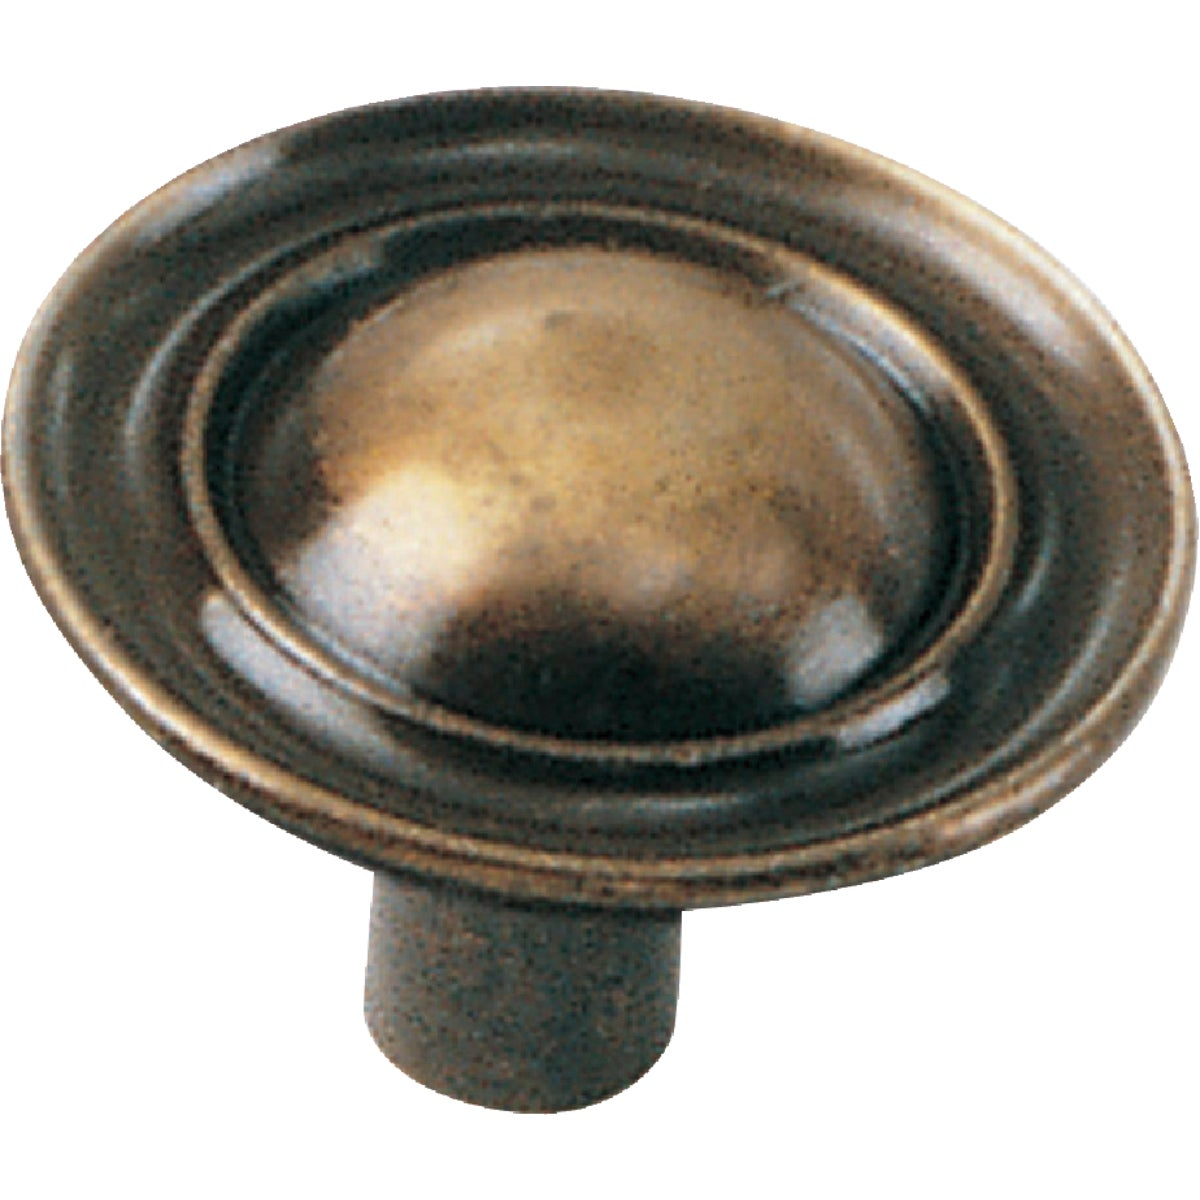 "1-1/4"" ANTQ BRASS KNOB - 75705 by Laurey Co"